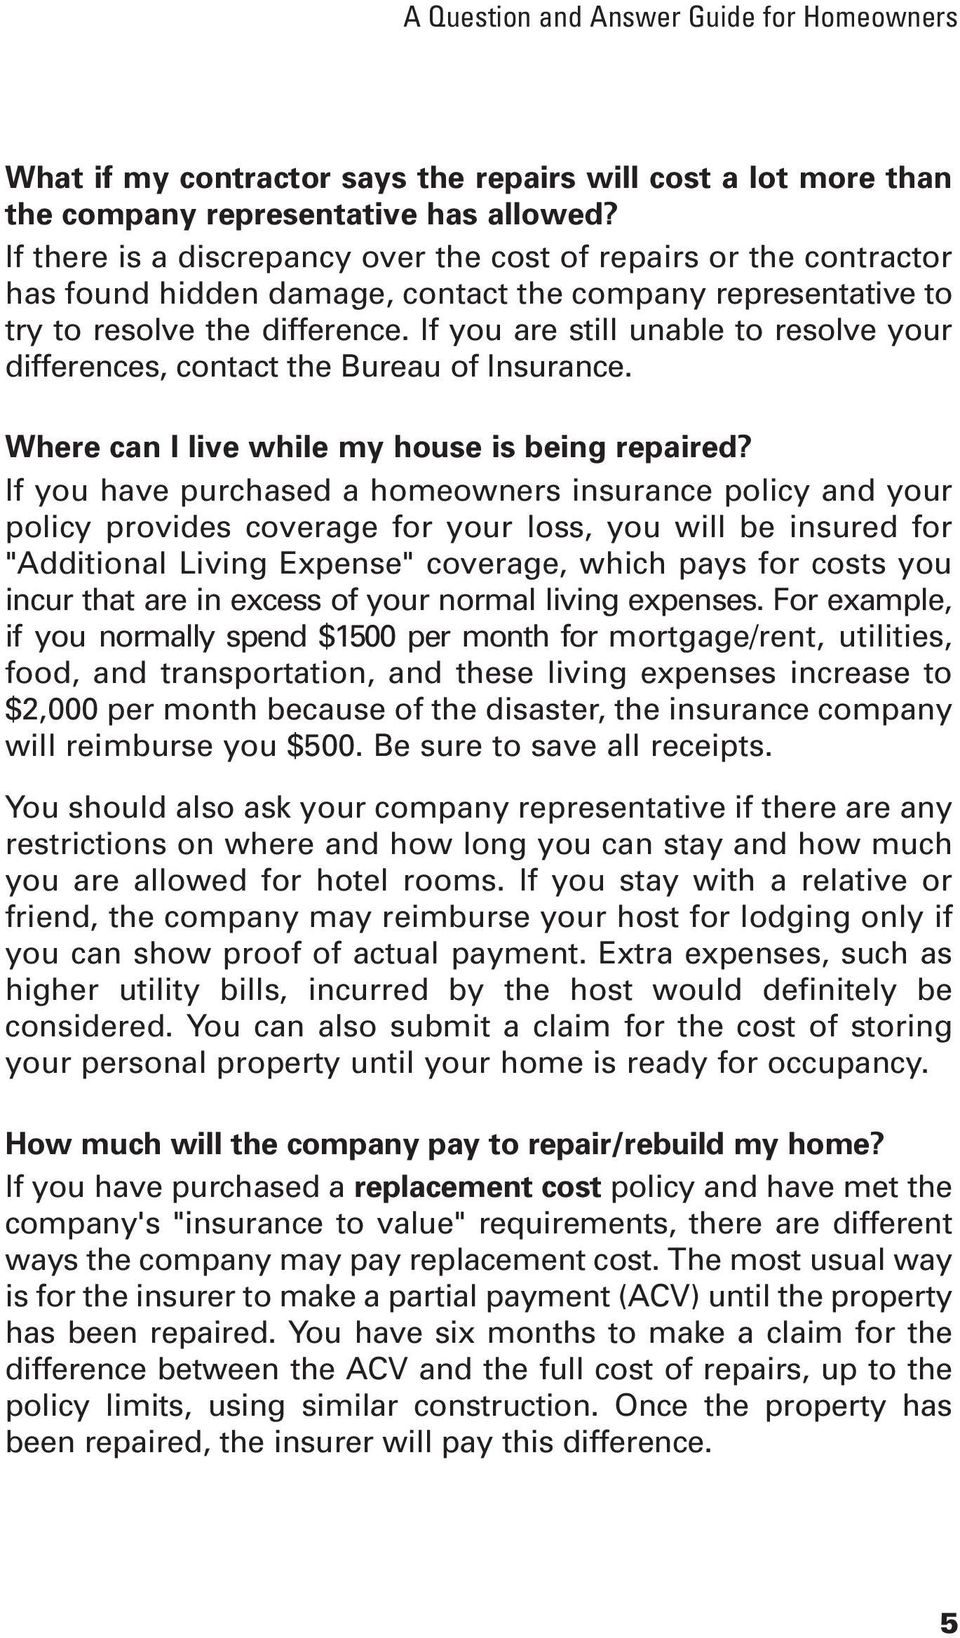 If you are still unable to resolve your differences, contact the Bureau of Insurance. Where can I live while my house is being repaired?